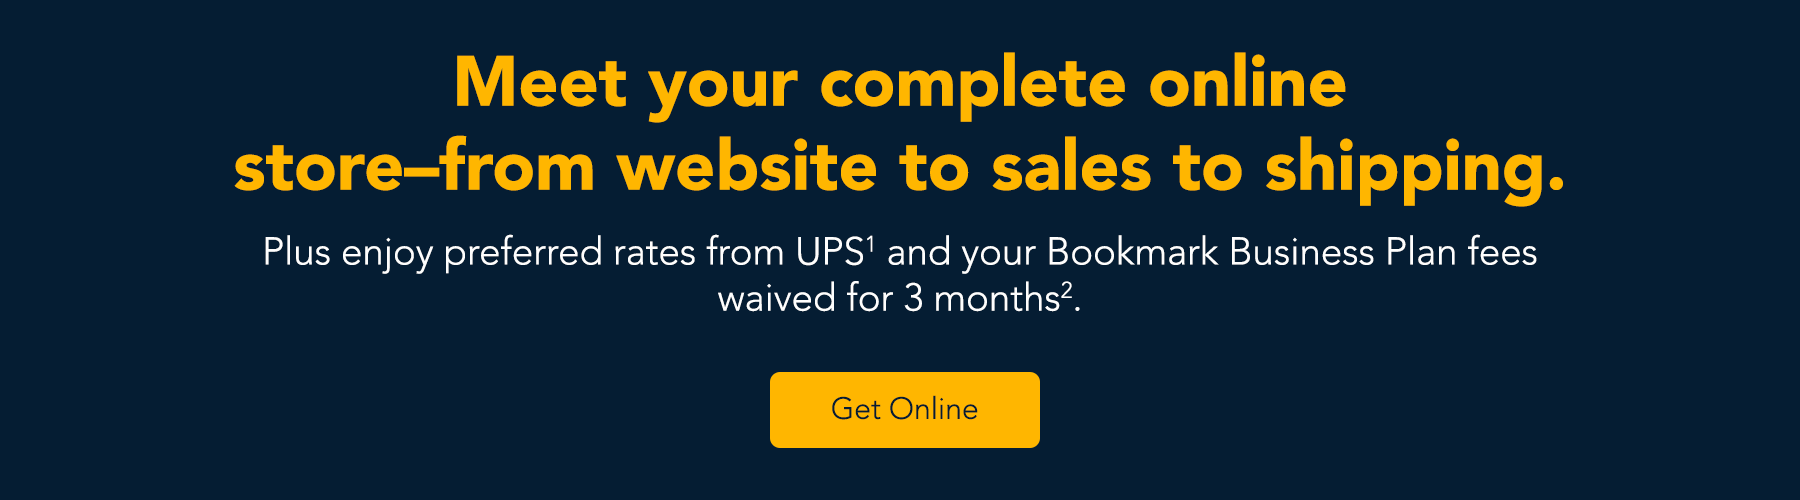 Meet your complete online store-from website to sales to shipping.  Plus enjoy preferred rates from UPS and your Bookmark Business Plan fees waived for 3 months.